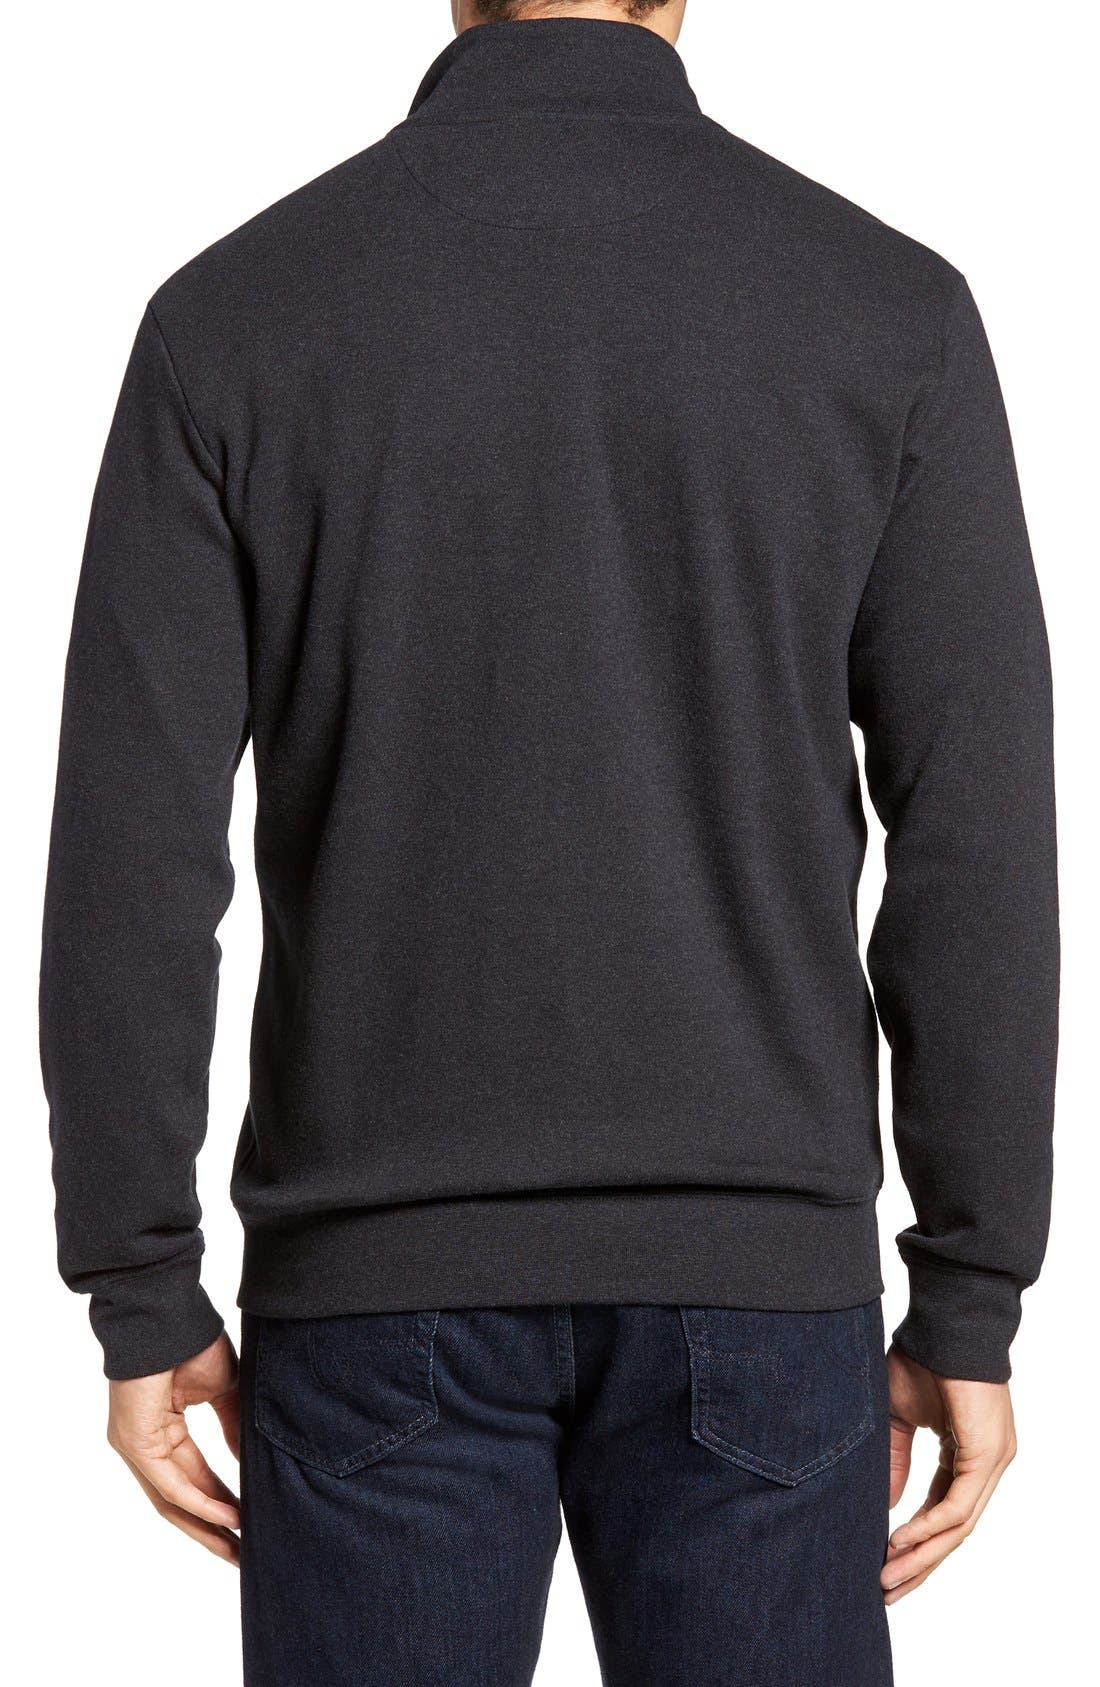 Alternate Image 2  - Vineyard Vines Quarter Zip Sweater